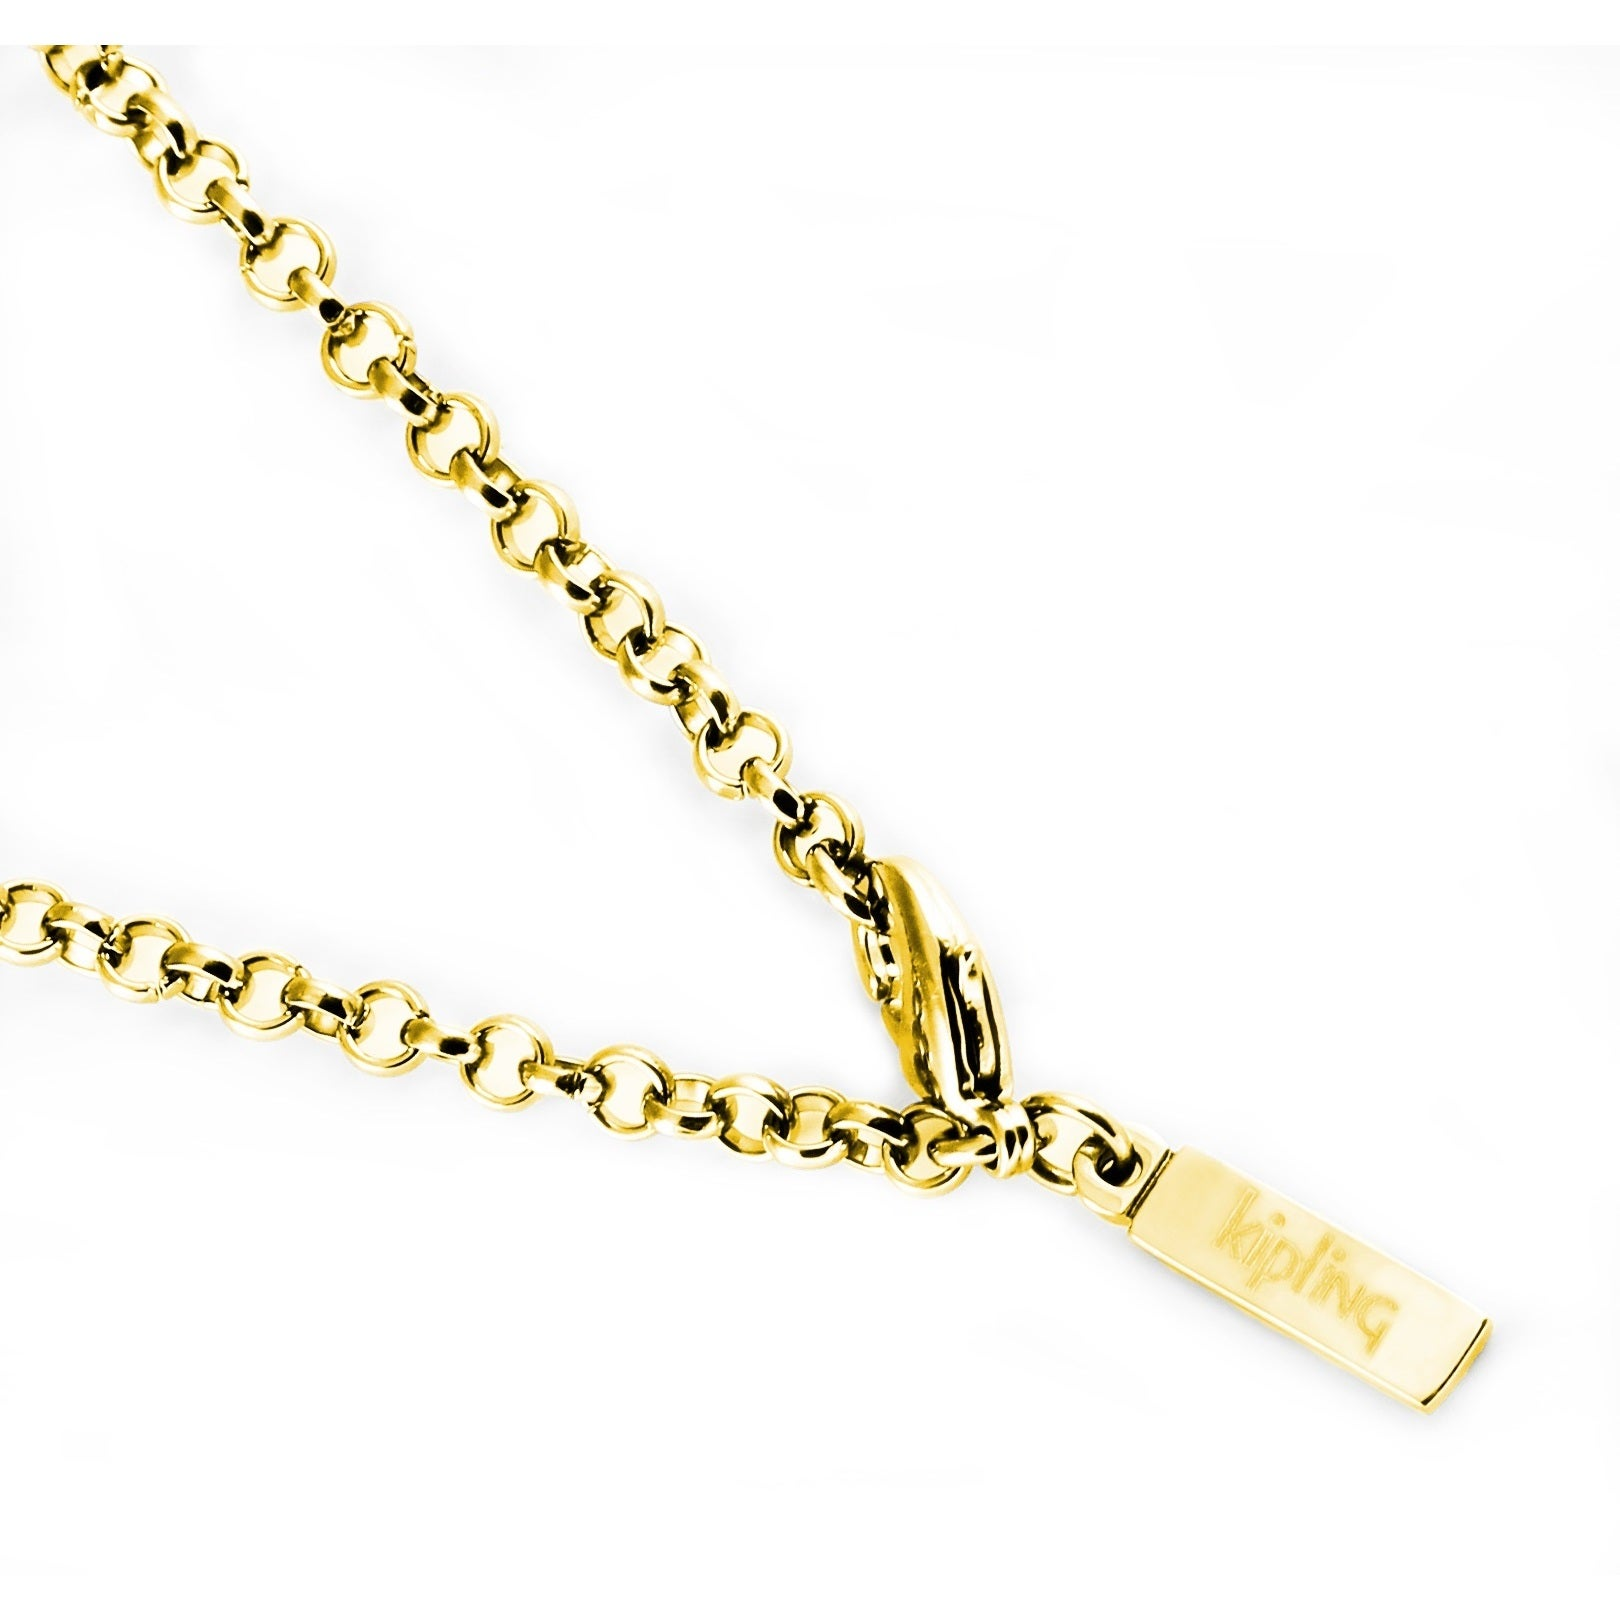 Solid 14K Yellow or White Gold Necklace Box Chain Extension 3 inches